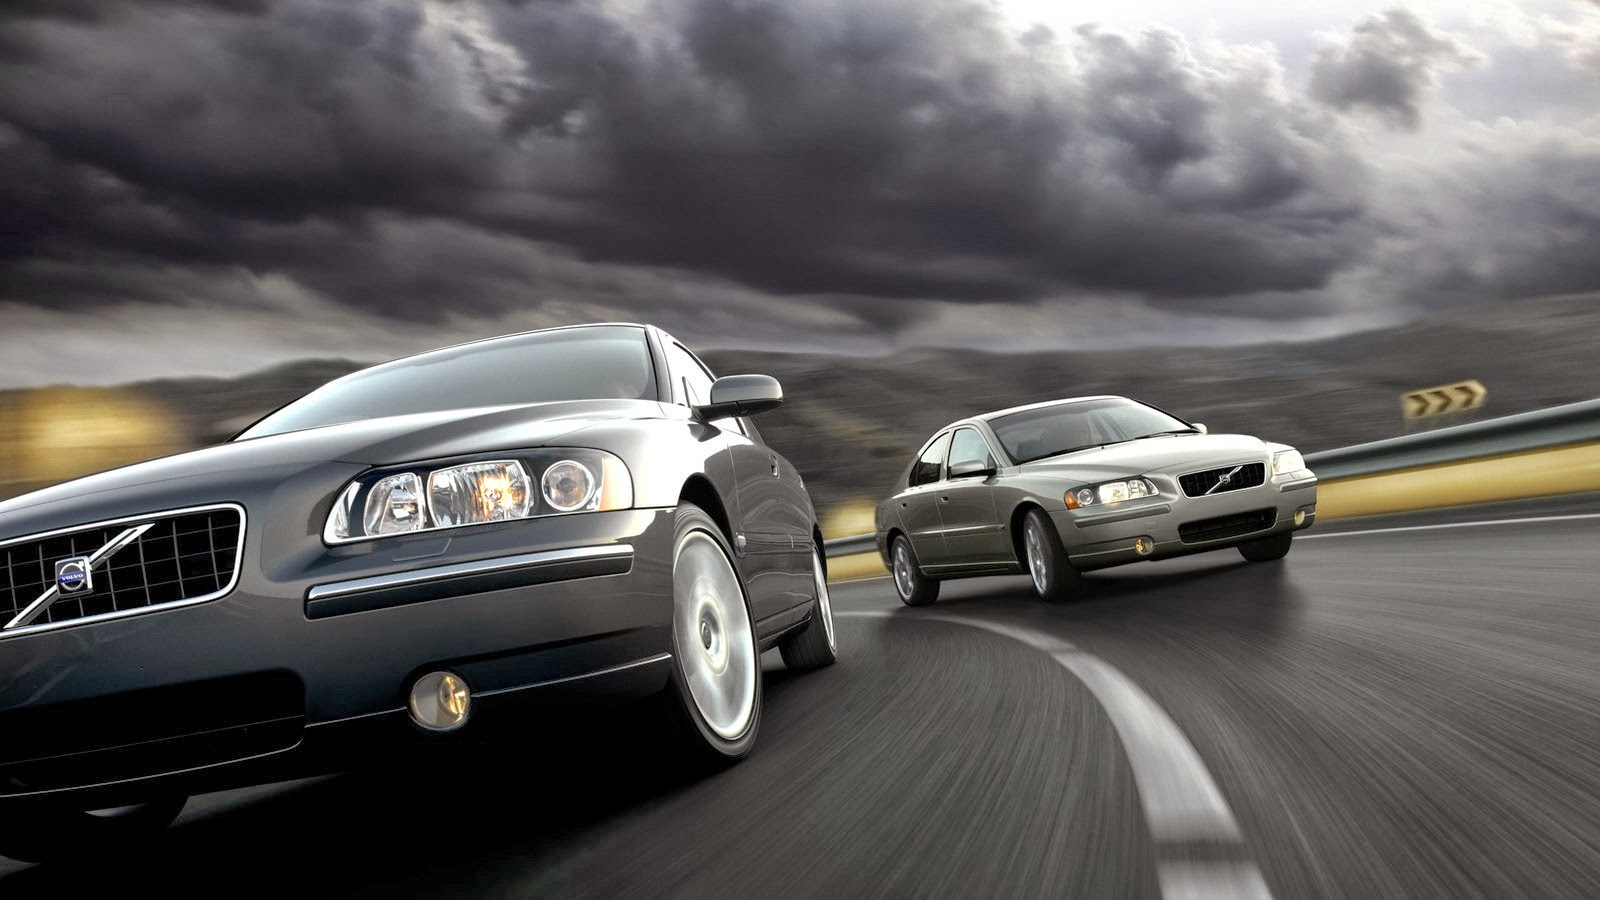 Cars Wallpapers Full Size 2012